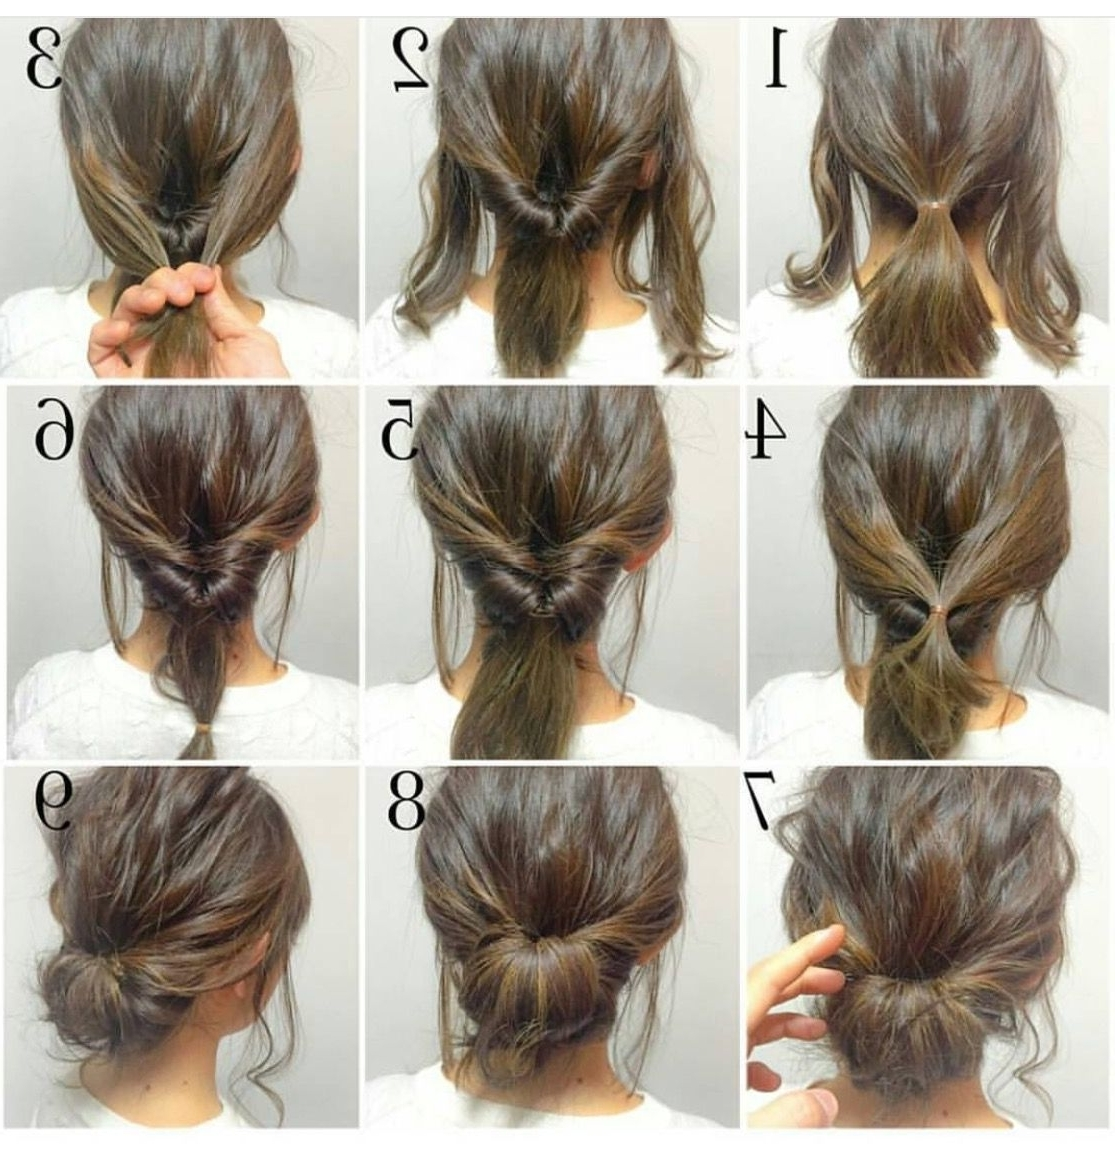 Easy, Hope This Works Out Quick Morning Hair! | • H A I R Intended For Updo Low Bun Hairstyles (View 6 of 15)